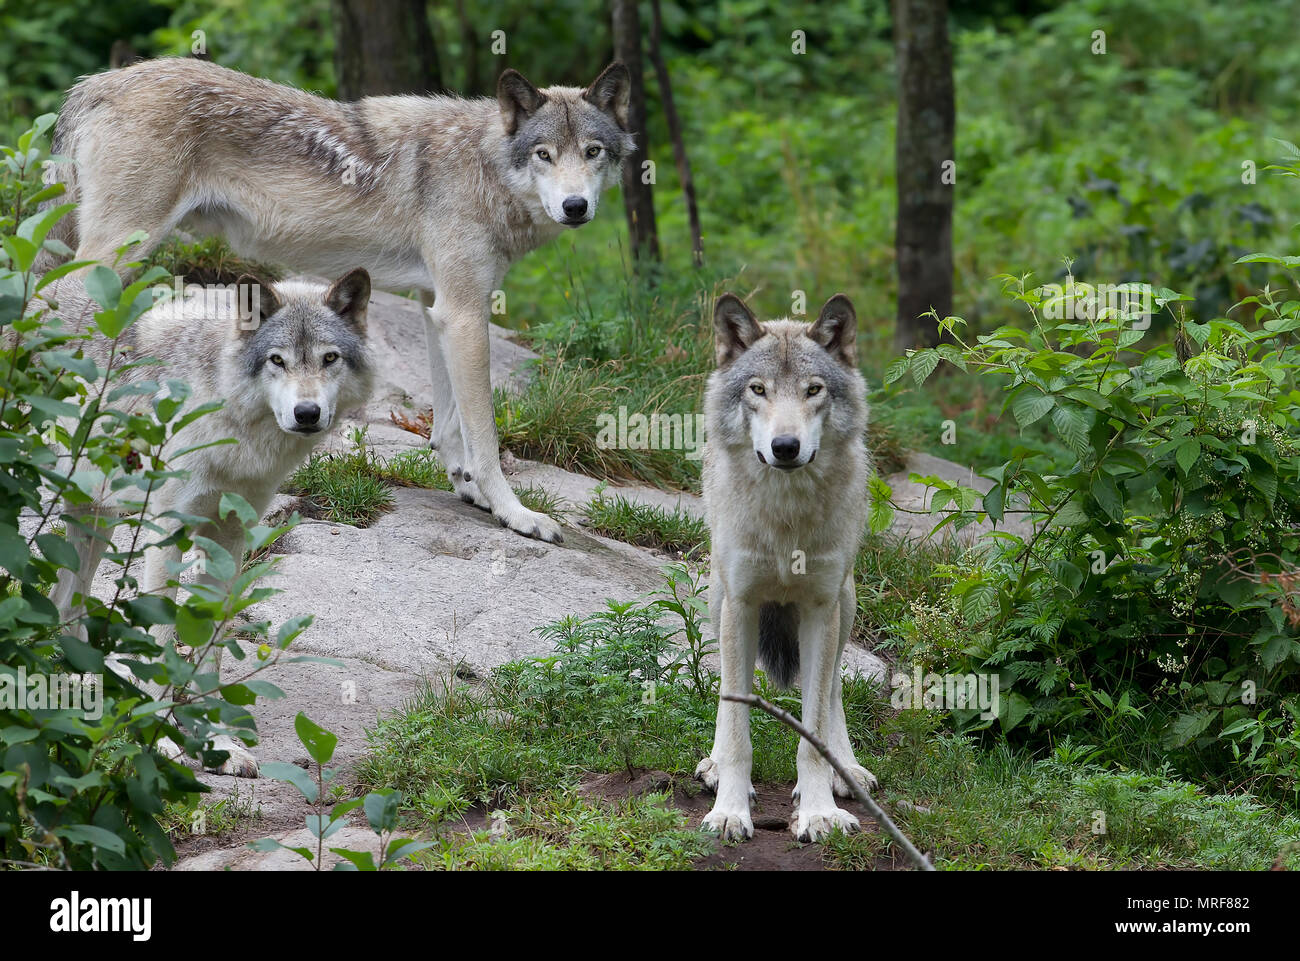 Timber wolves or Grey wolf (Canis lupus) standing on a rock cliff in summer in Canada - Stock Image